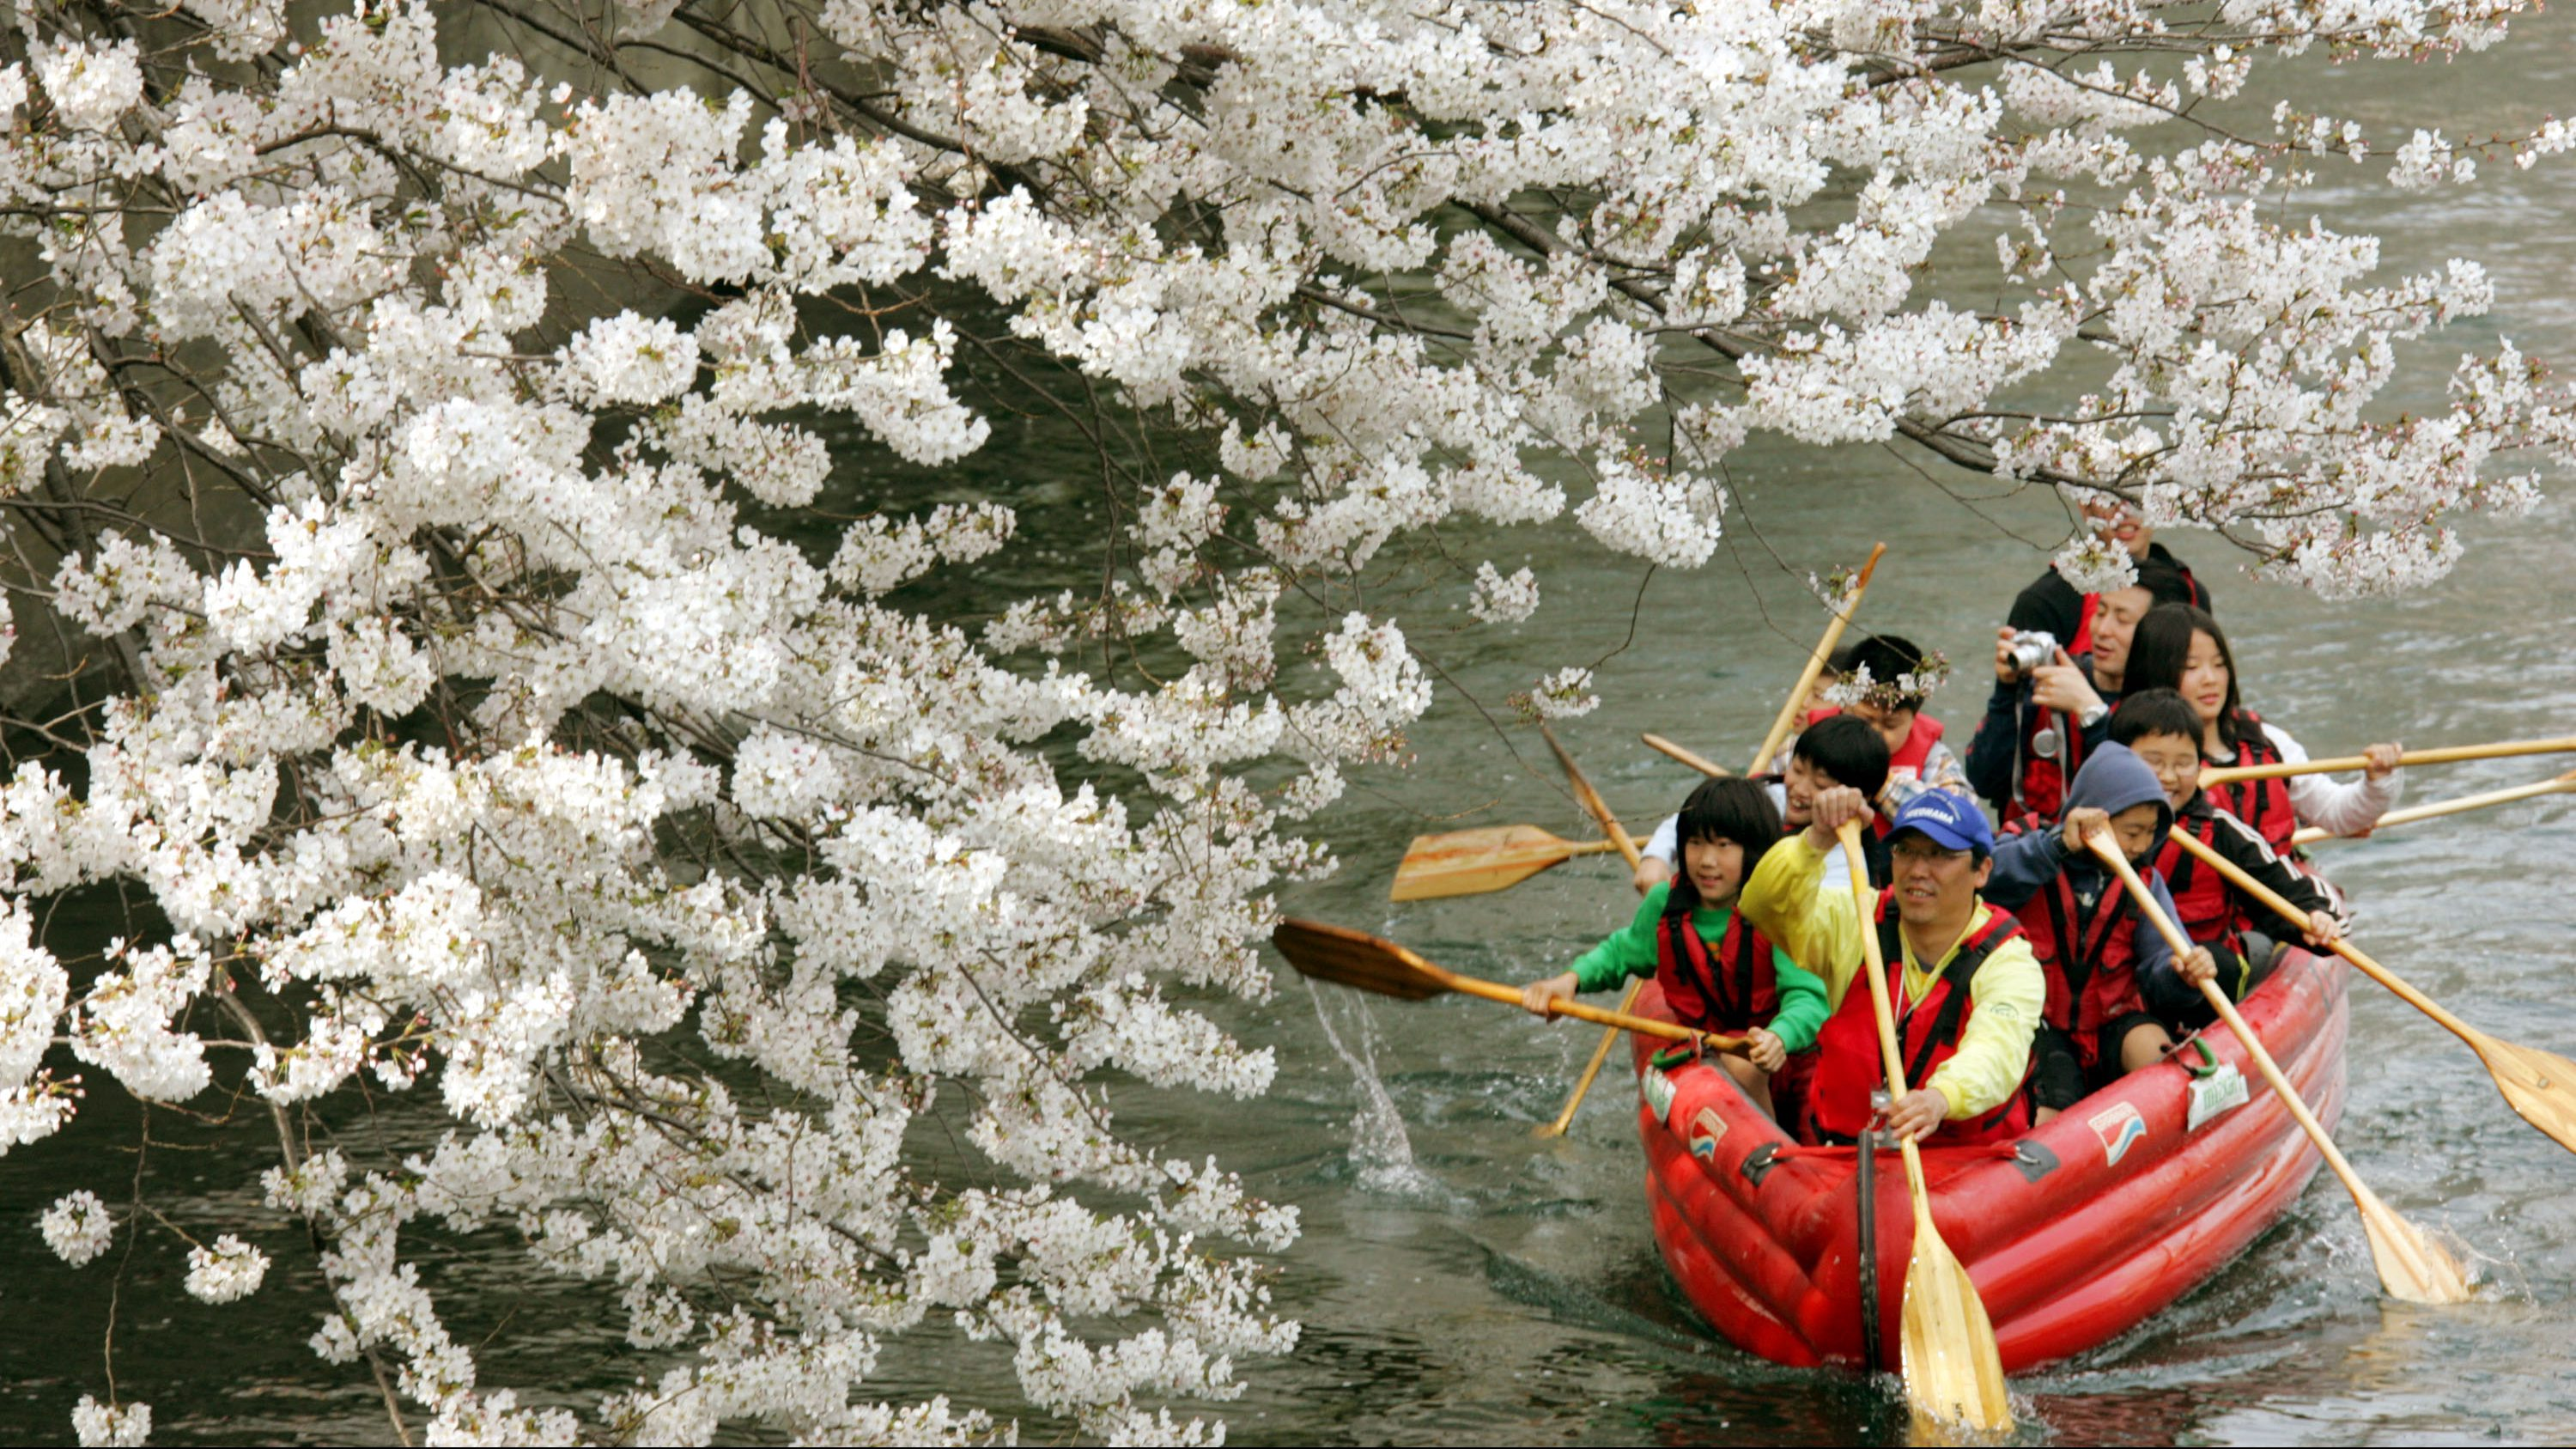 People enjoy cherry blossoms on the canoe in Yokohama, near Tokyo,  Sunday April 1, 2007. Tens of millions of people across the country are expected to take pleasure in viewing cherry blossoms around this time of the year.